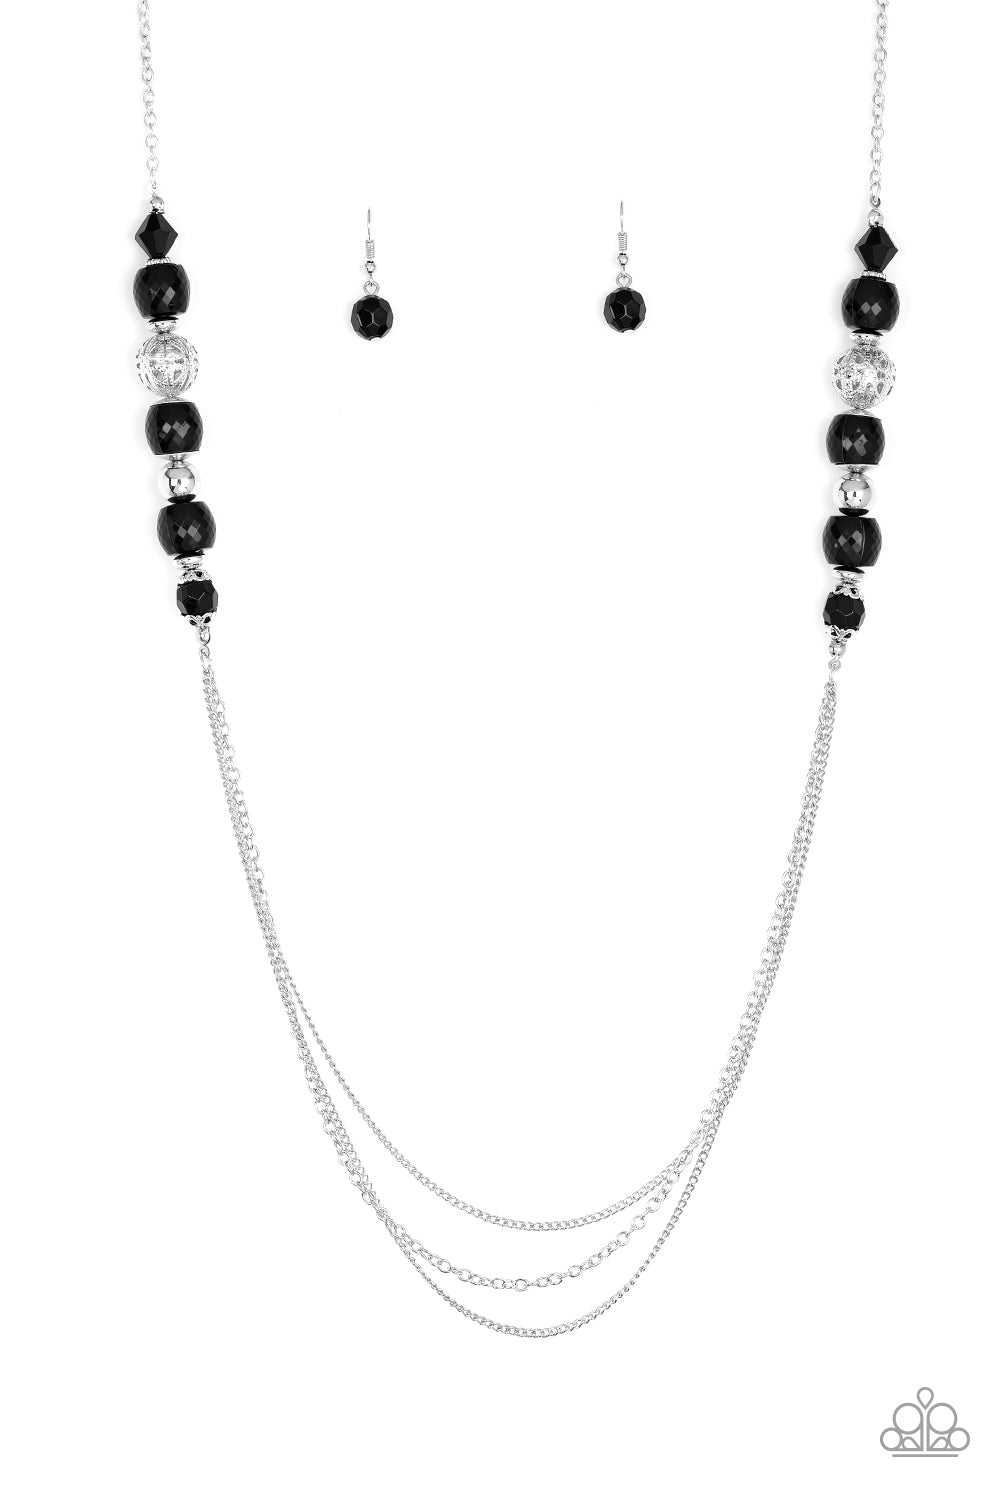 Native New Yorker - Black Necklace - The Paparazzi Fox